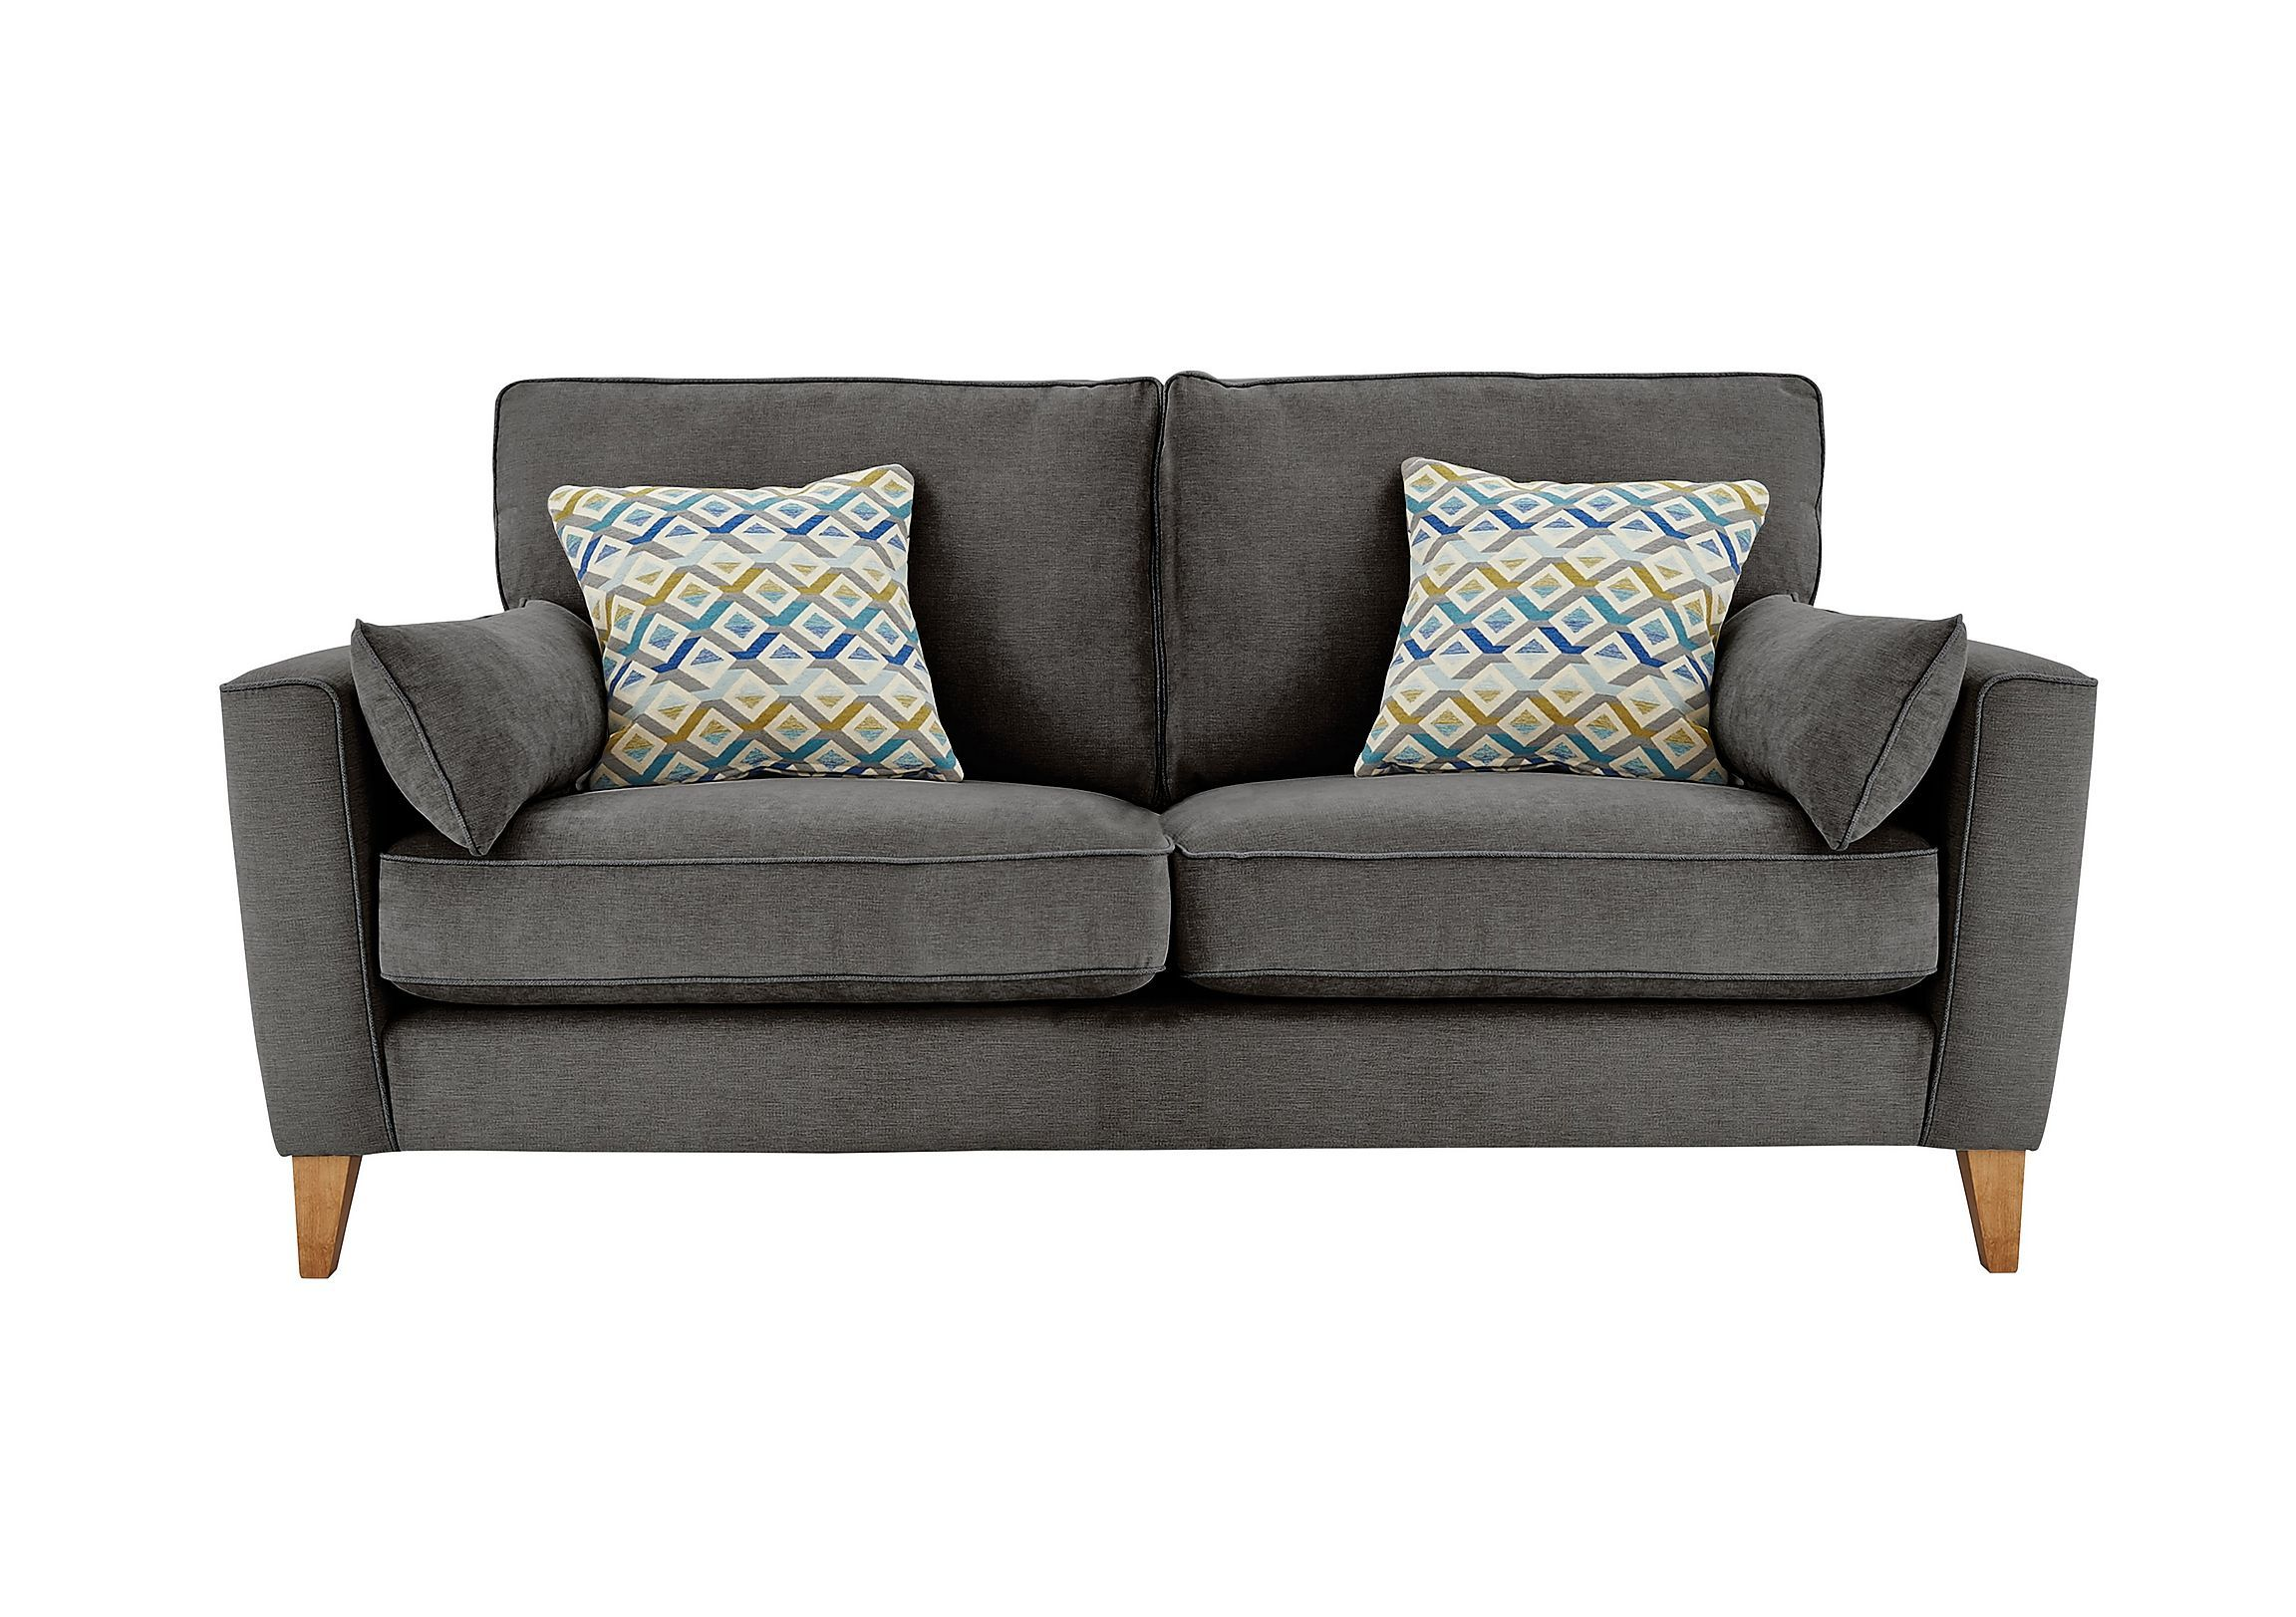 Furniture Village Hartford Sofa Clean Contemporary Scandi Style Roomy Medium Sofa Seats Three